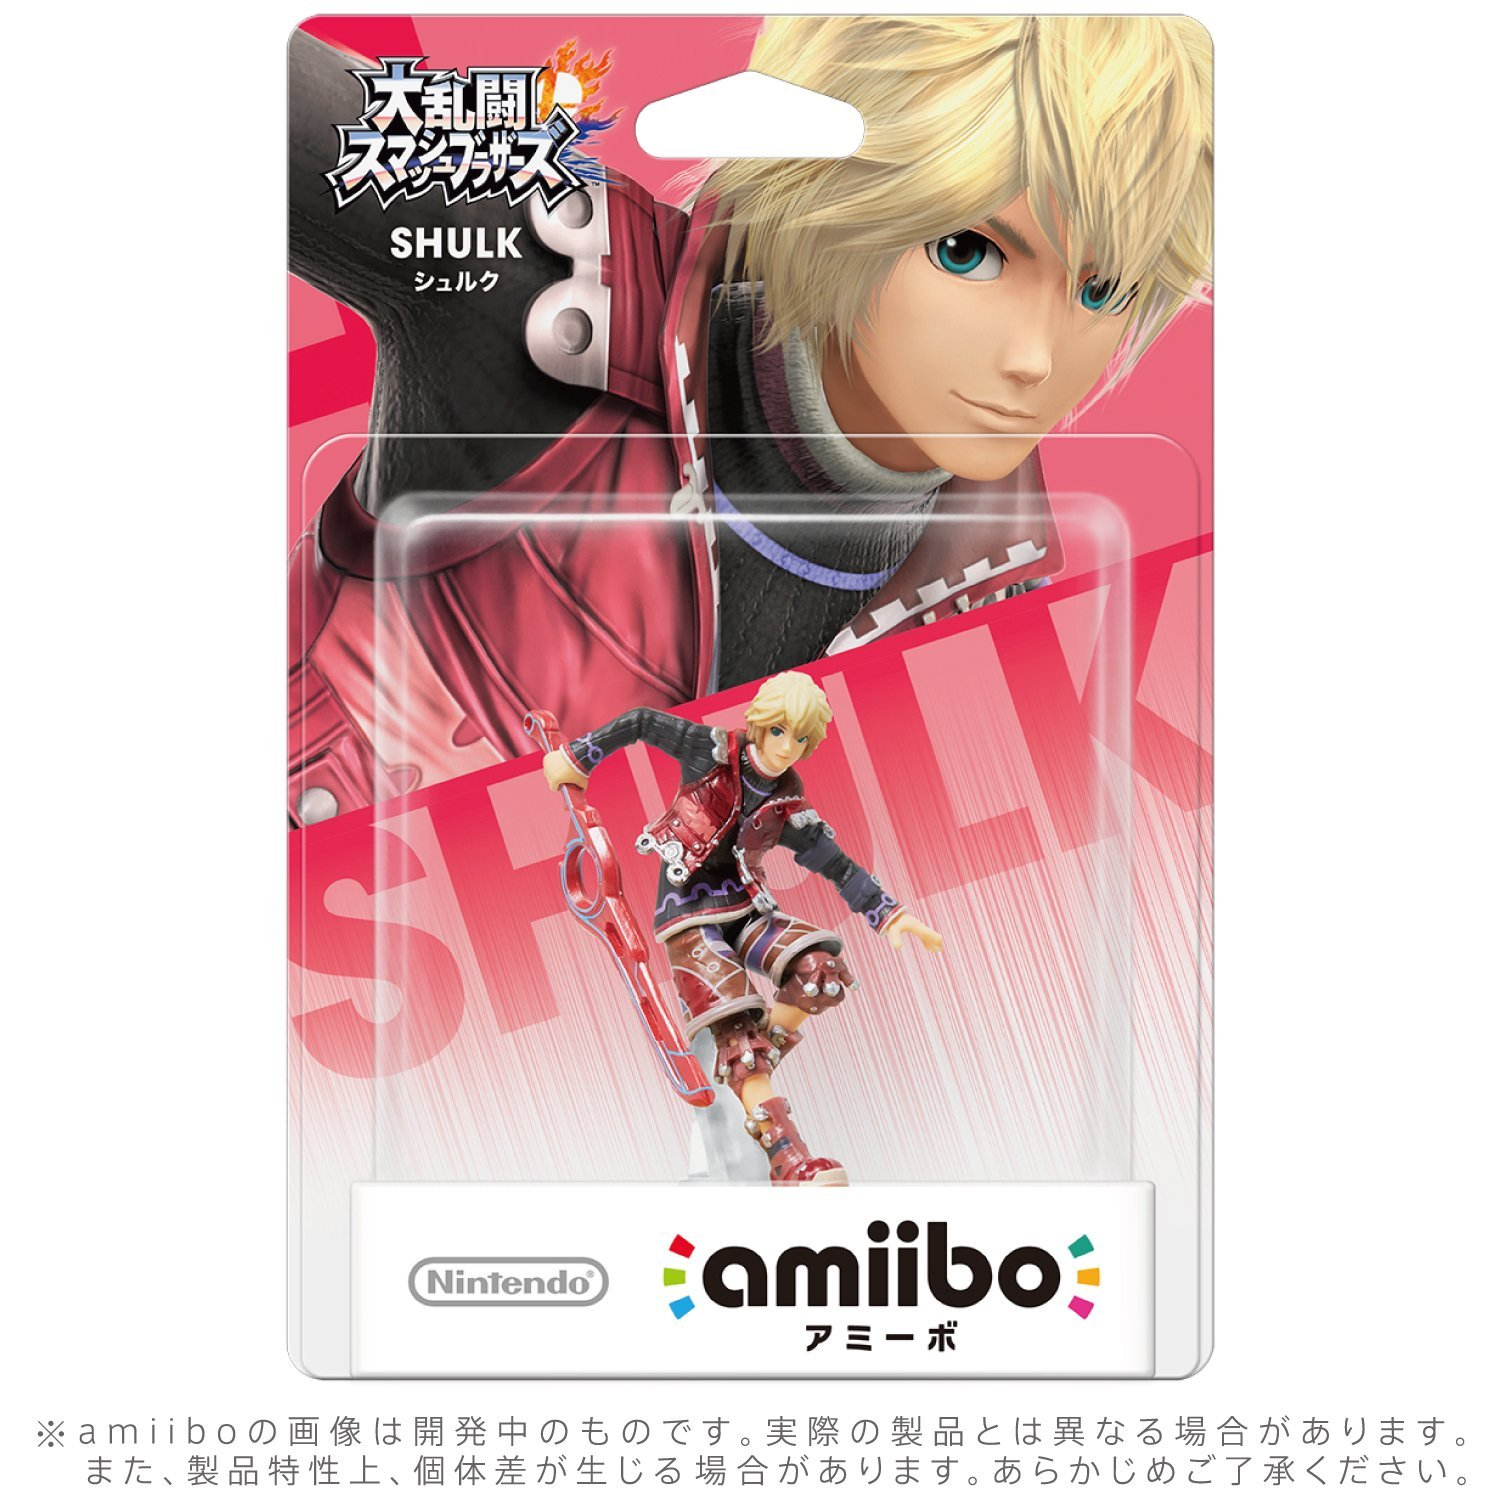 Wii U Amiibo Shulk (Super Smash Bros. Series)